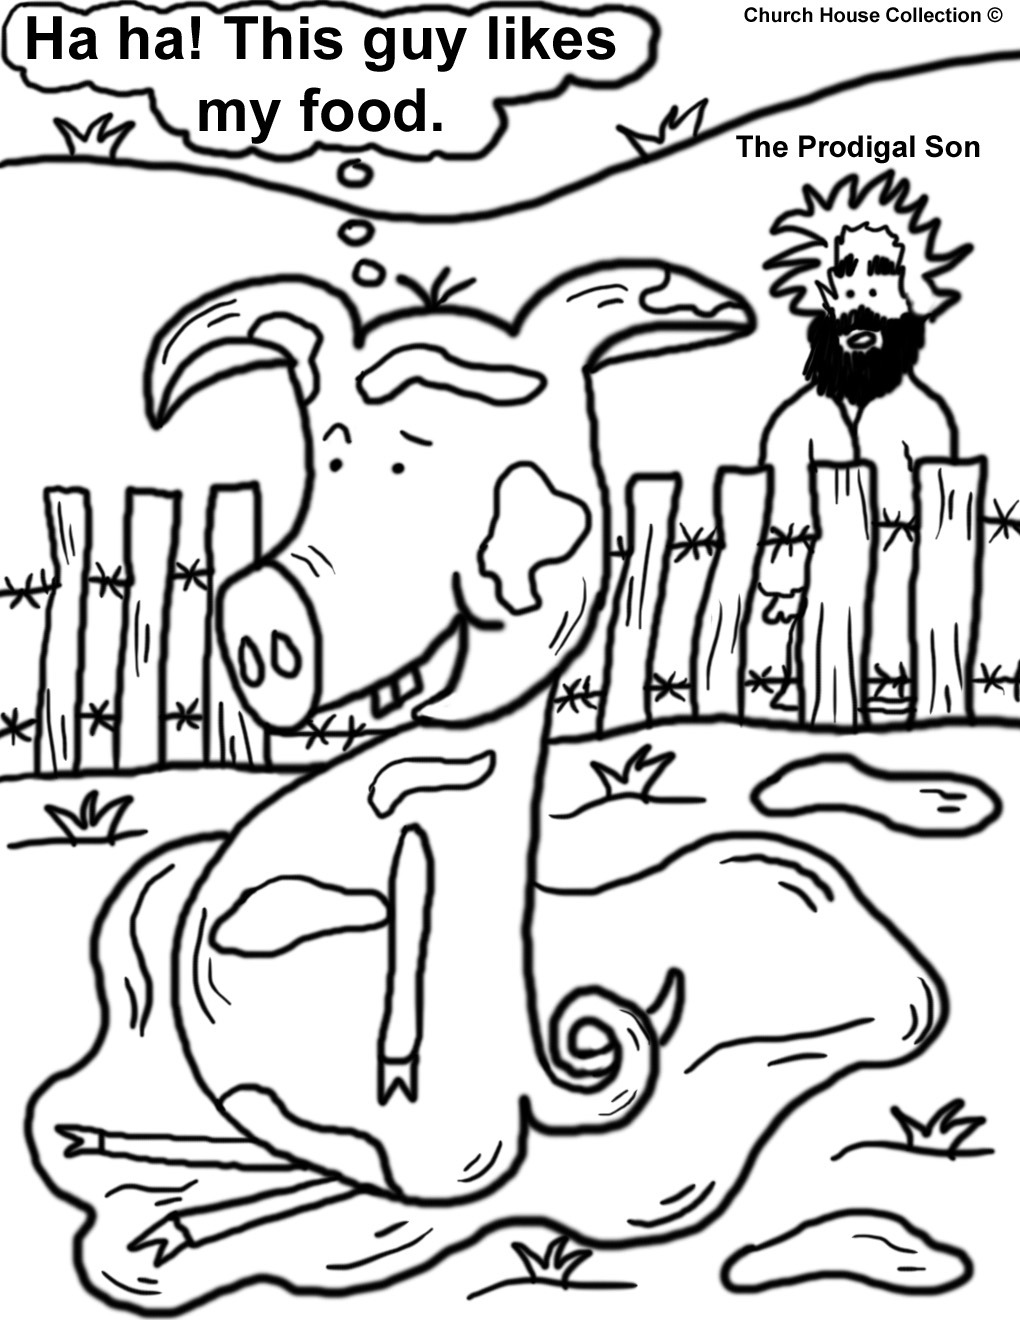 prodigal son coloring pages - photo#5